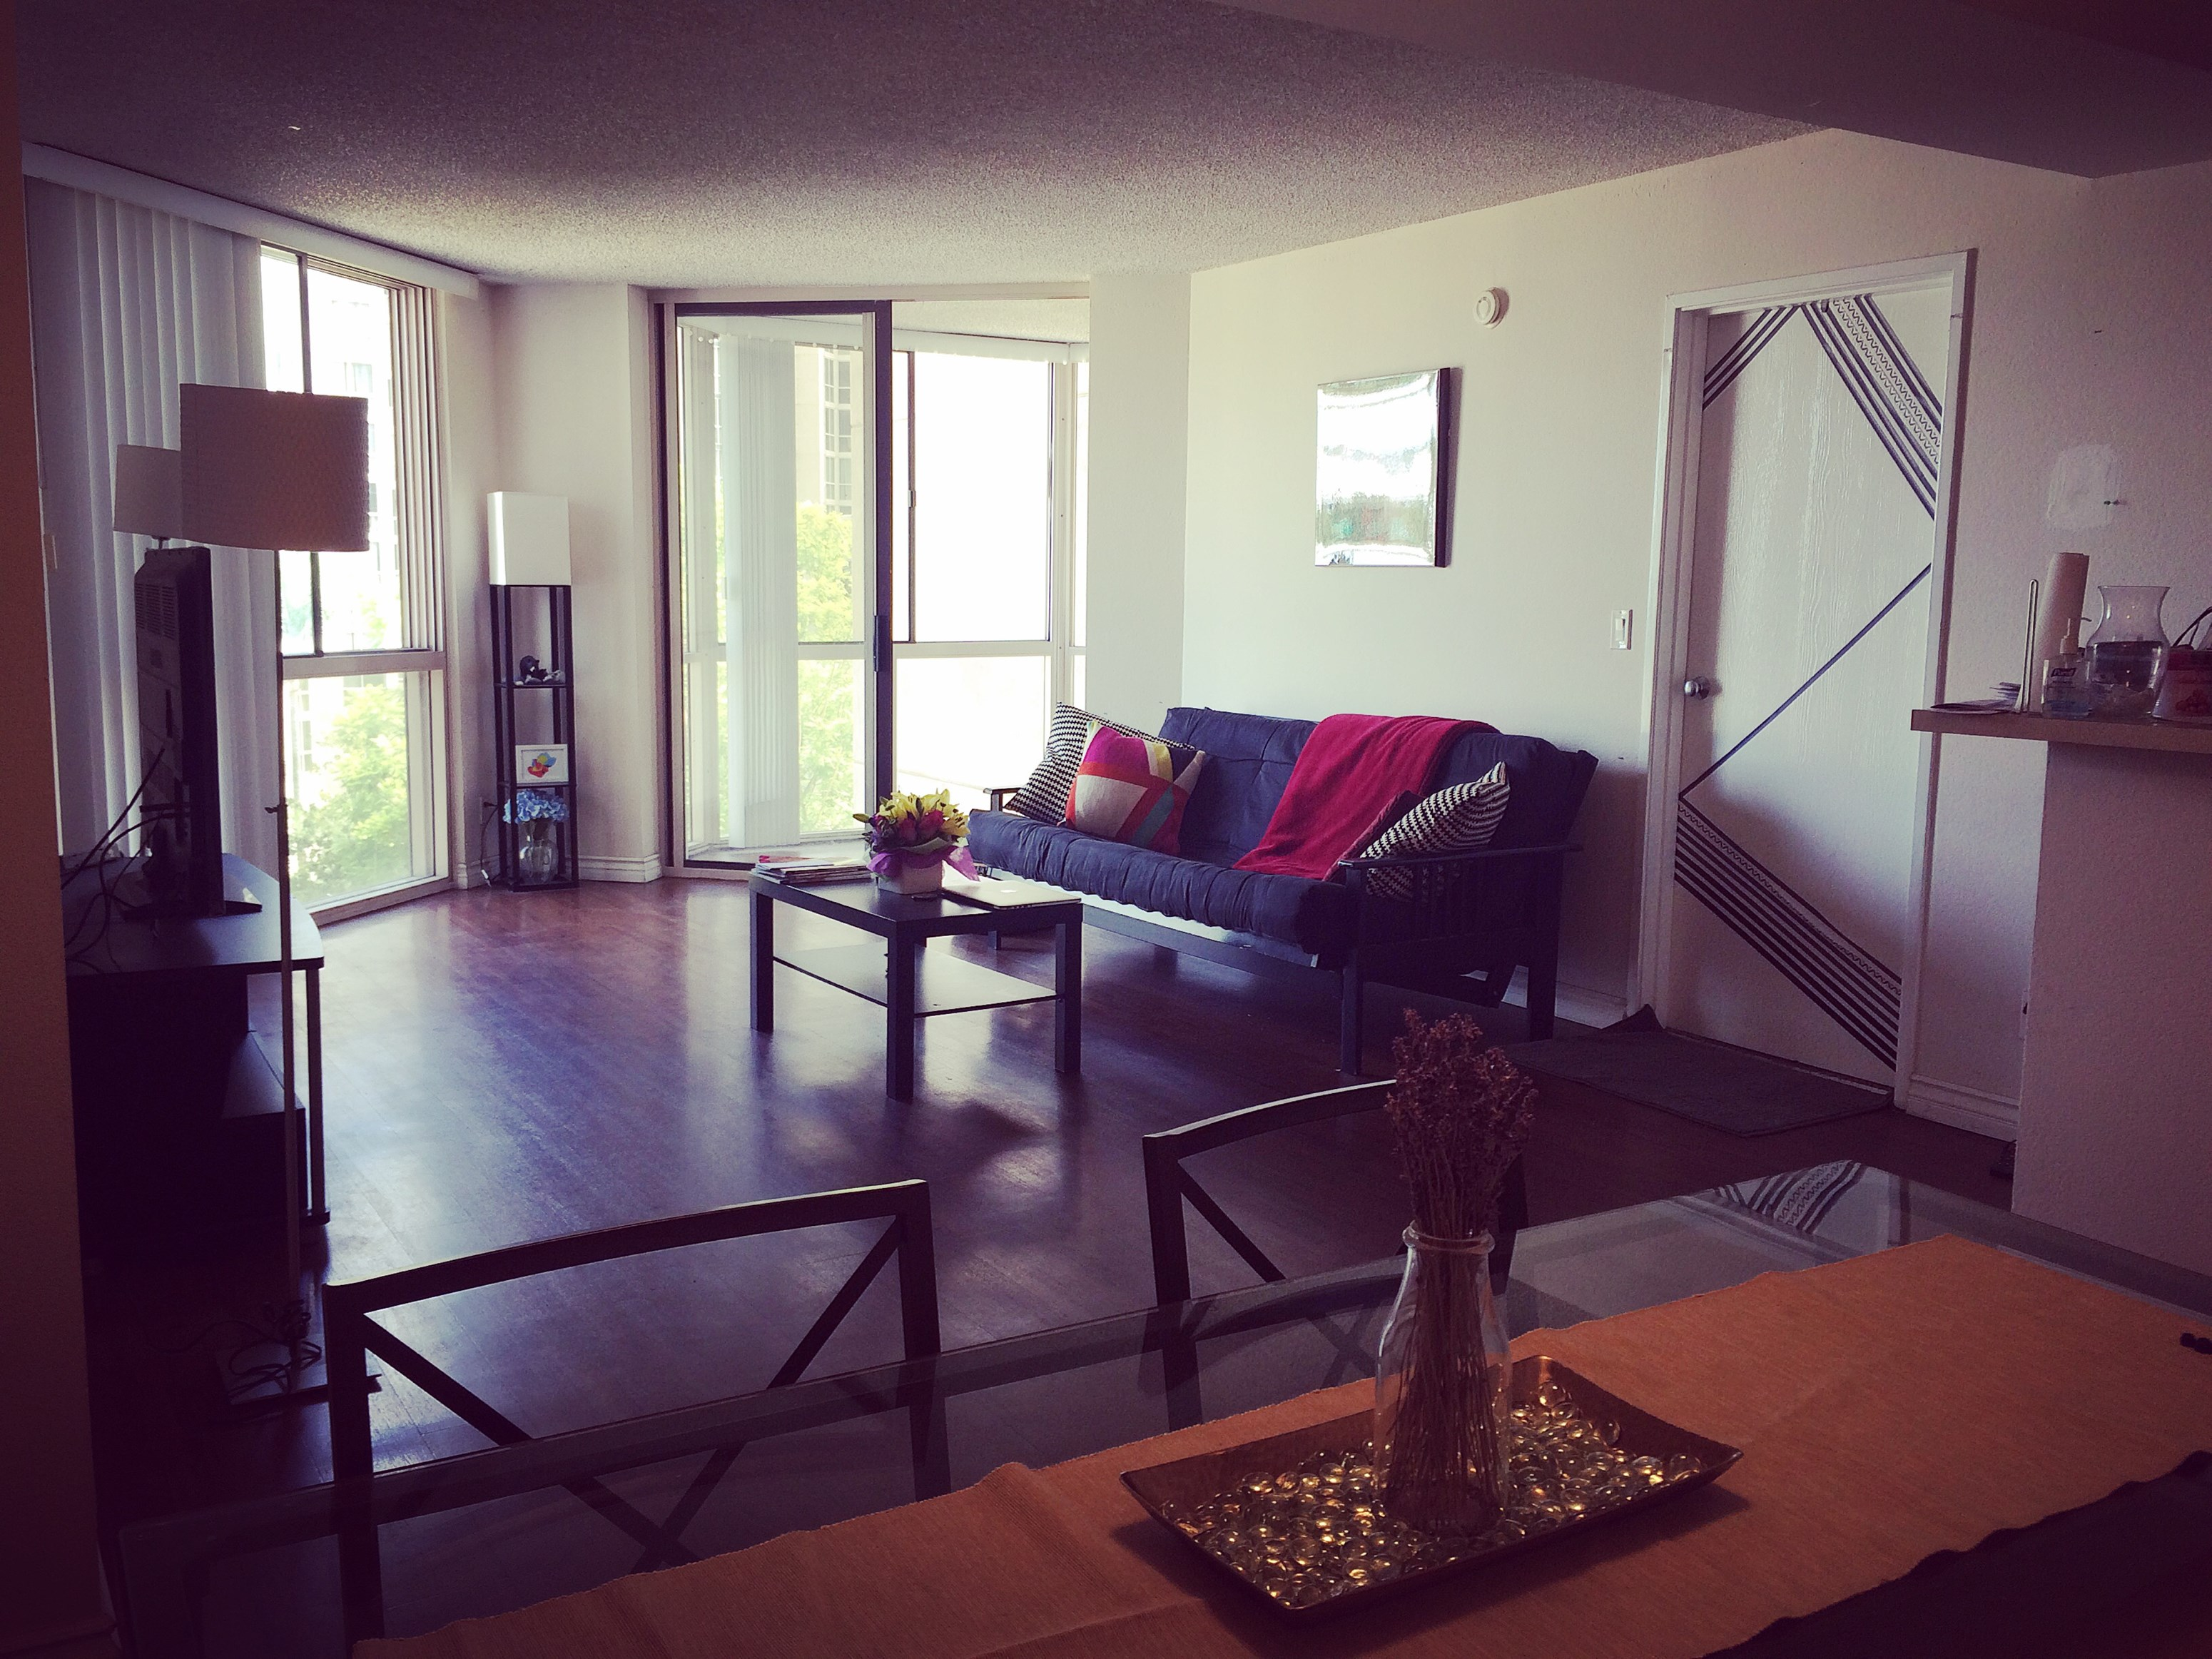 House For Rent In Los Angeles Metro Area Apartments Flats Commercial Spac